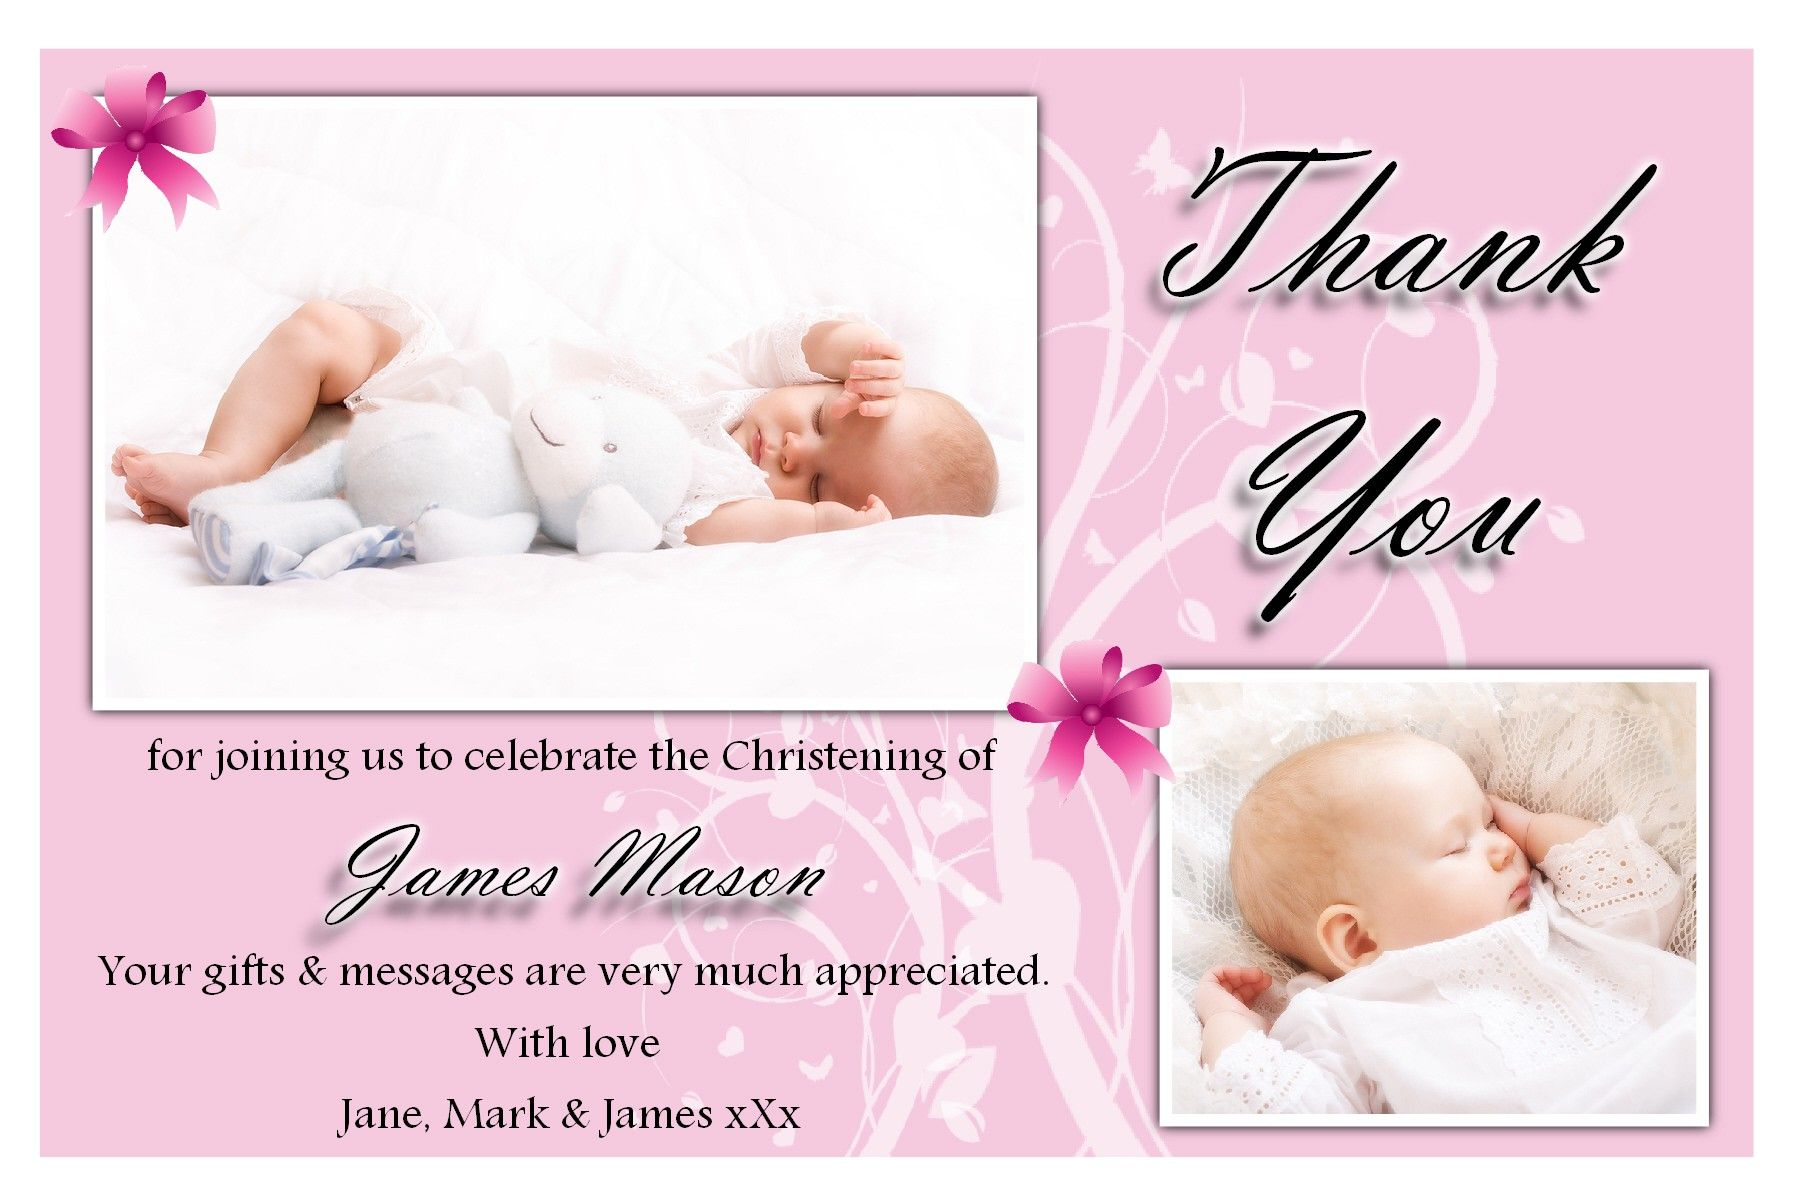 Free christening invitation templates software baptism free christening invitation templates software pronofoot35fo Gallery